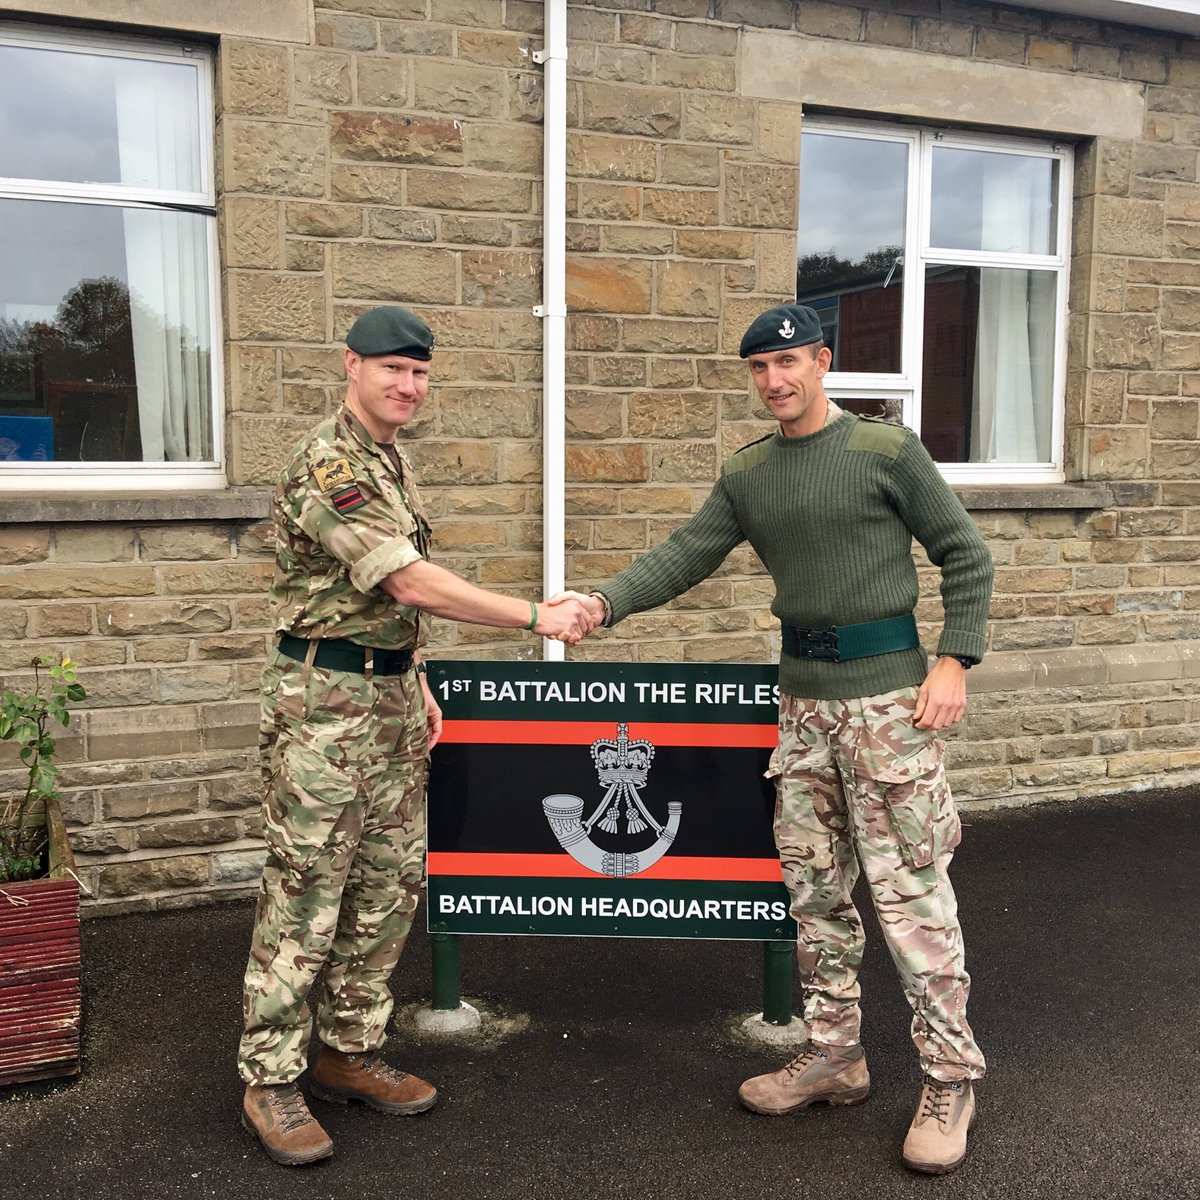 Today I handover to Lt Col Mark Shercliff after 2 years and 7 months as CO of 1 RIFLES. It has been a great honour and privilege to command such an outstanding team of thinking Riflemen. #ChosenMen #SwiftandBold